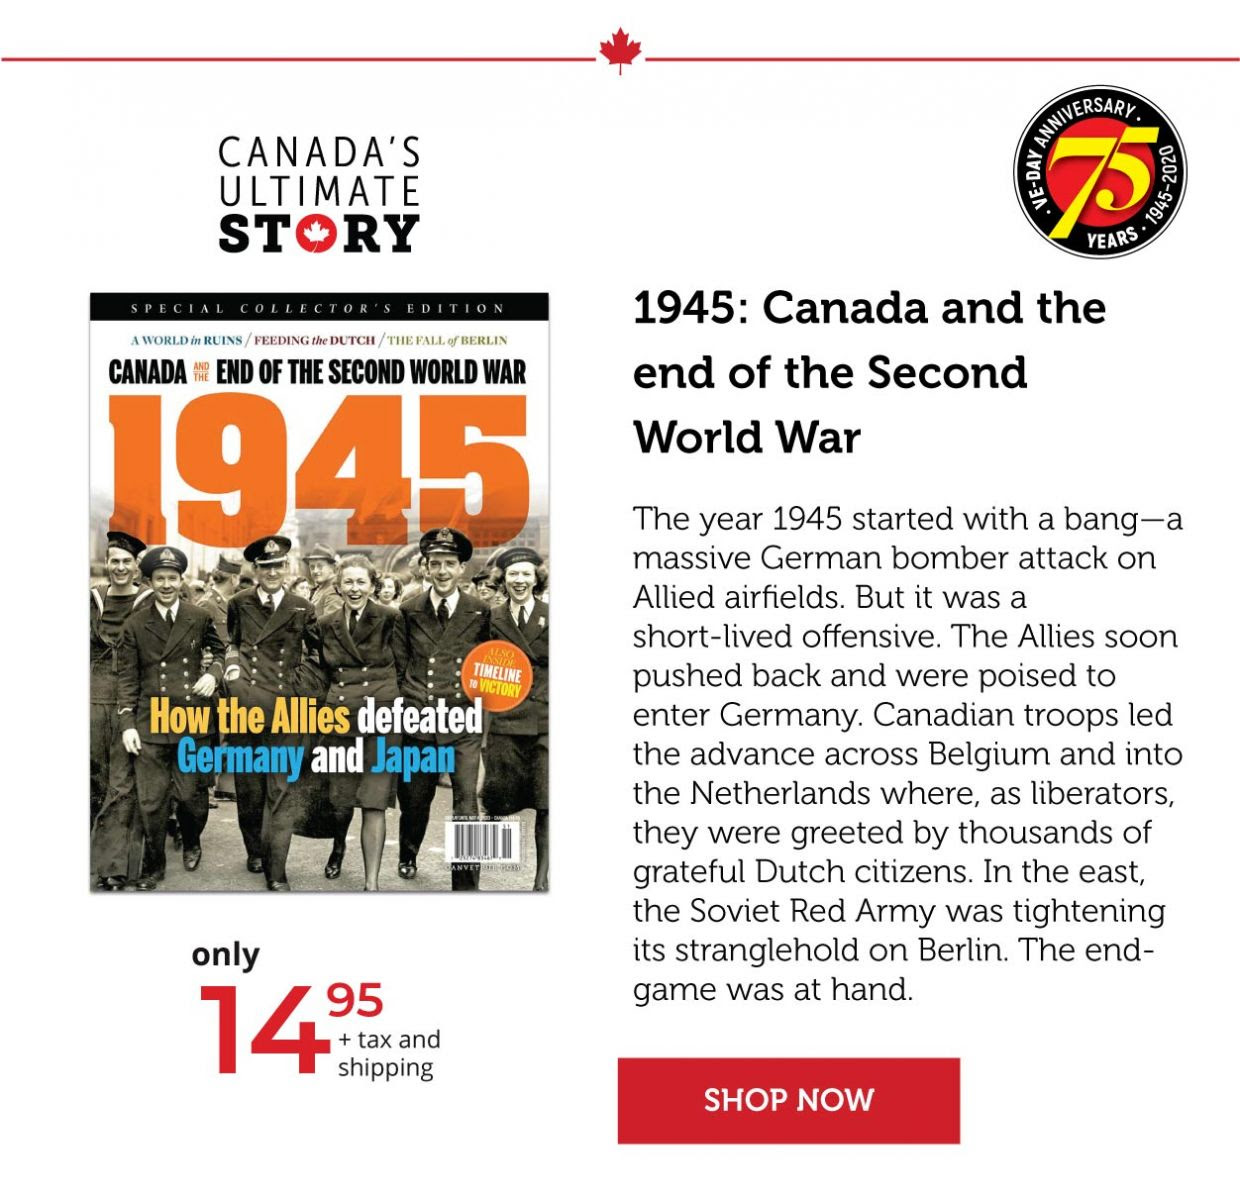 1945 – Canada and the end of the Second World War